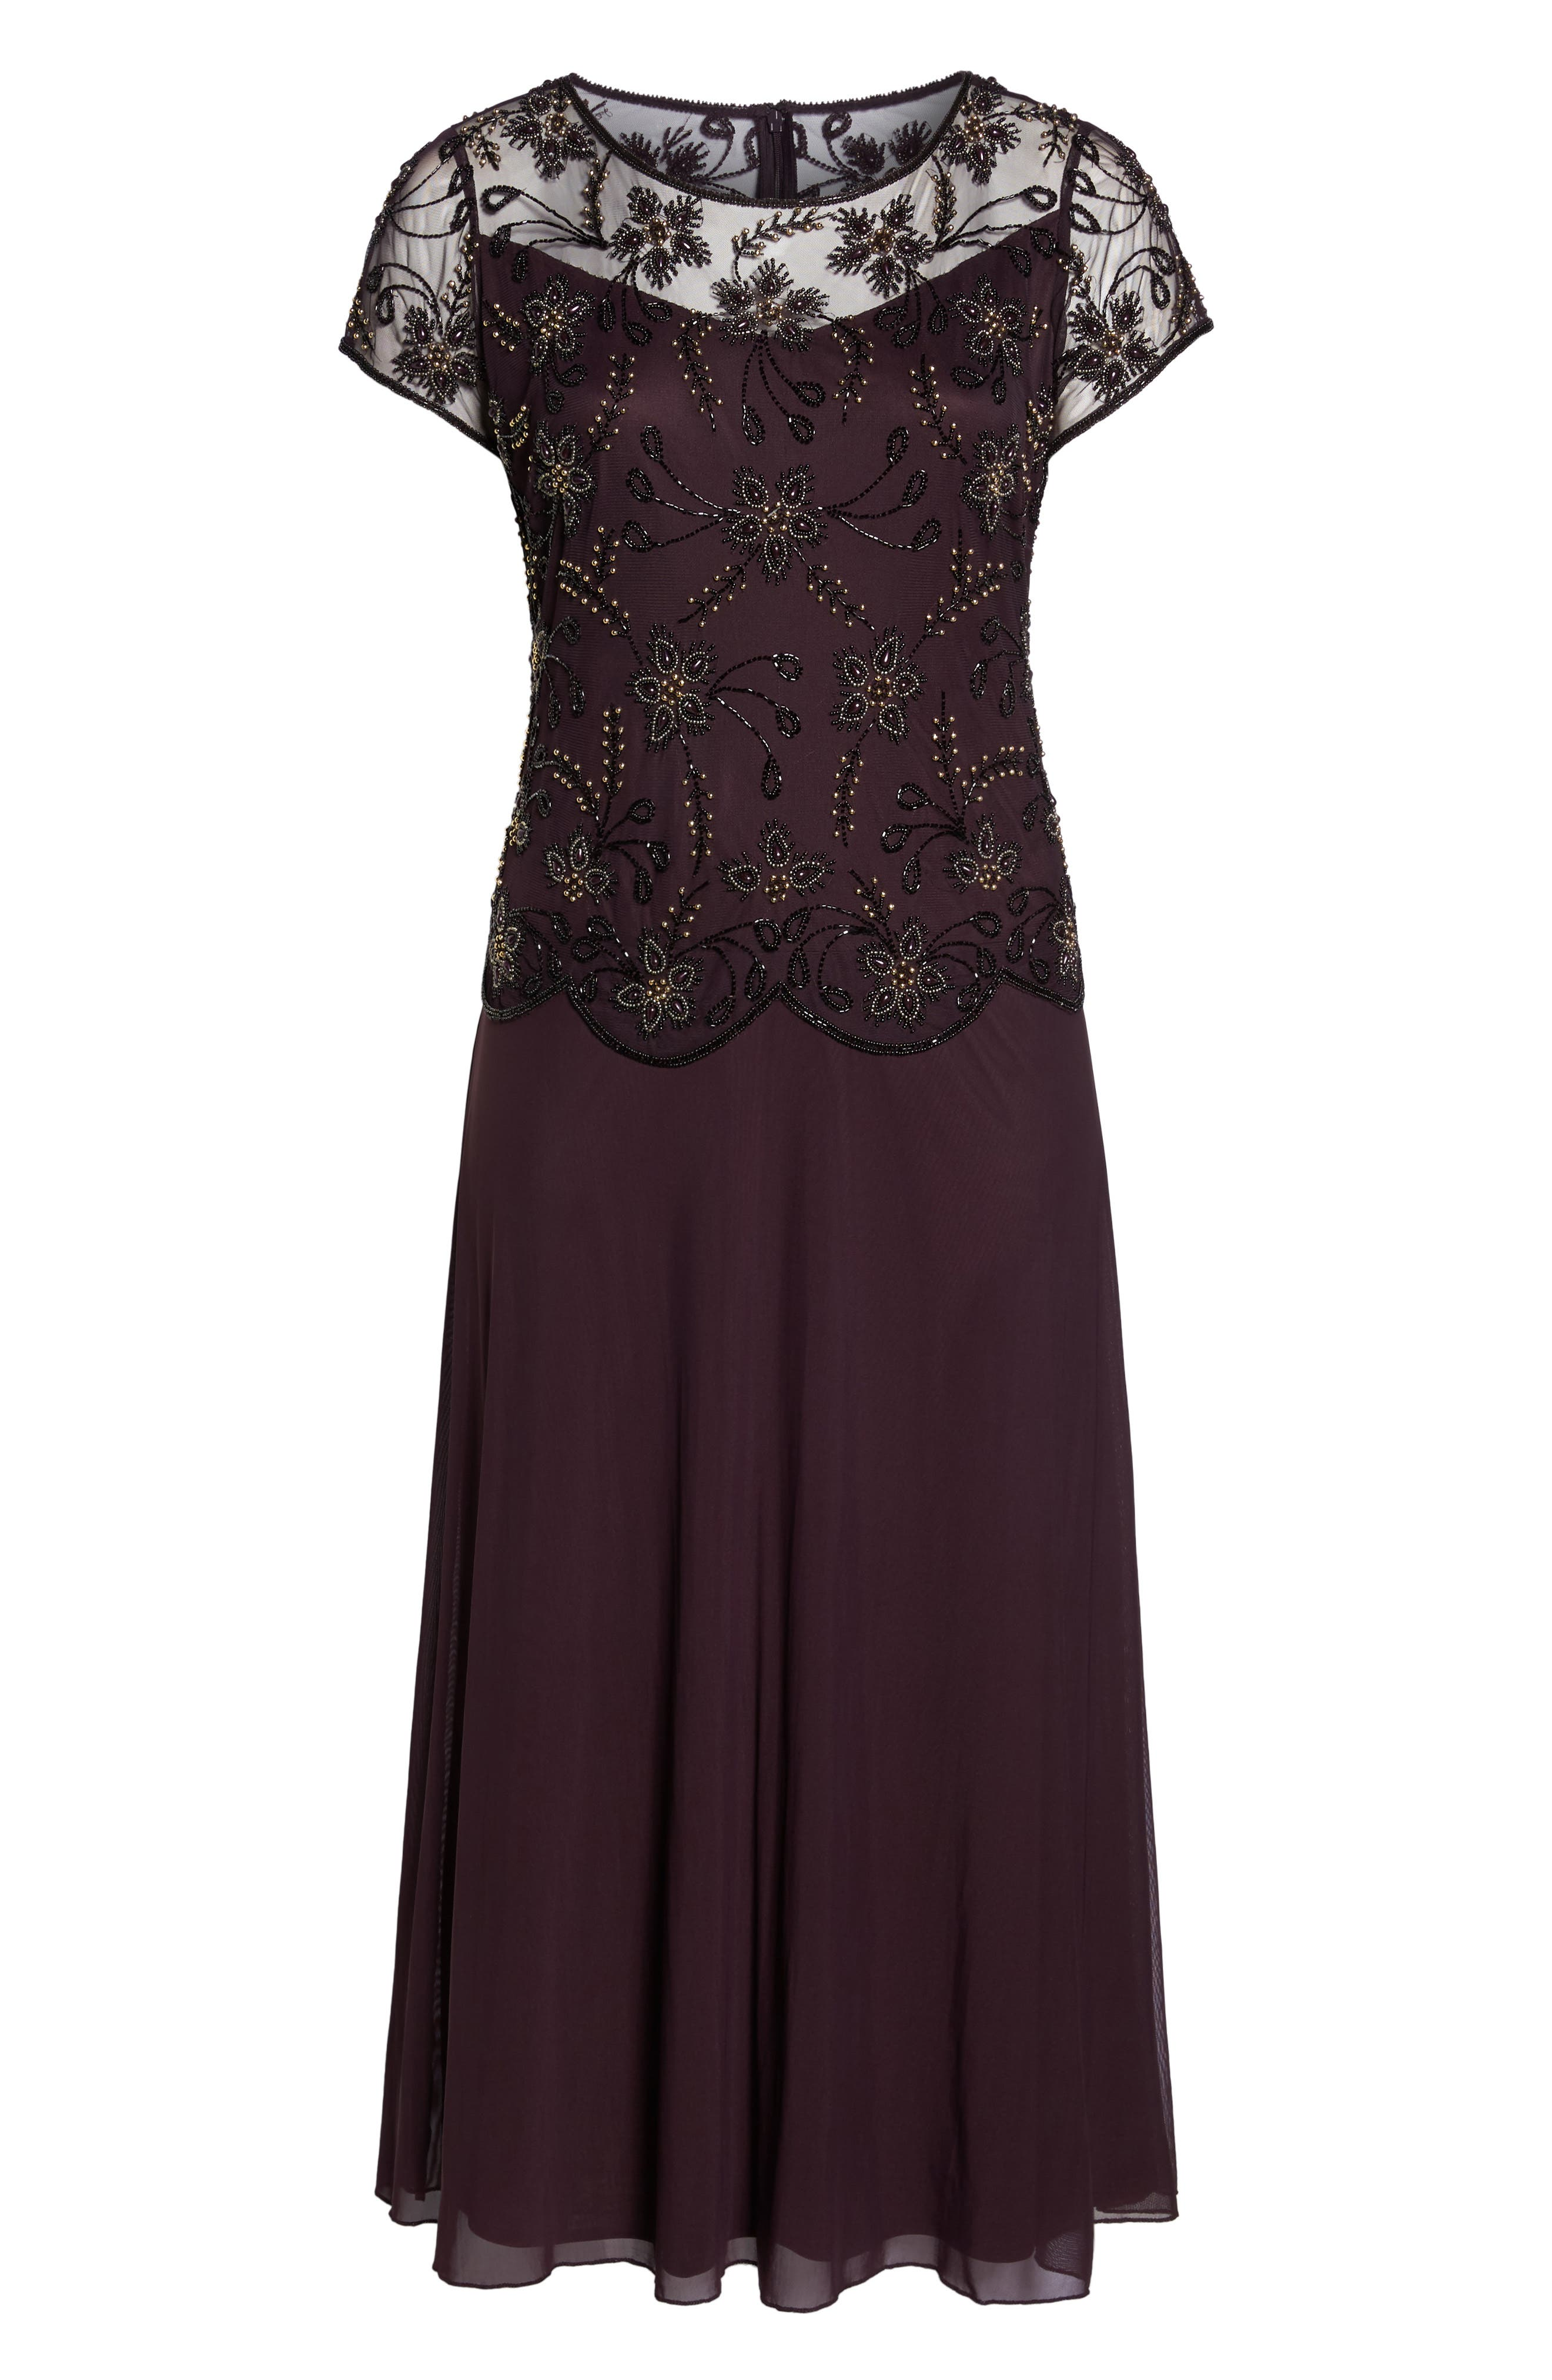 Embellished Mock Two-Piece Maxi Dress,                             Alternate thumbnail 6, color,                             Wine